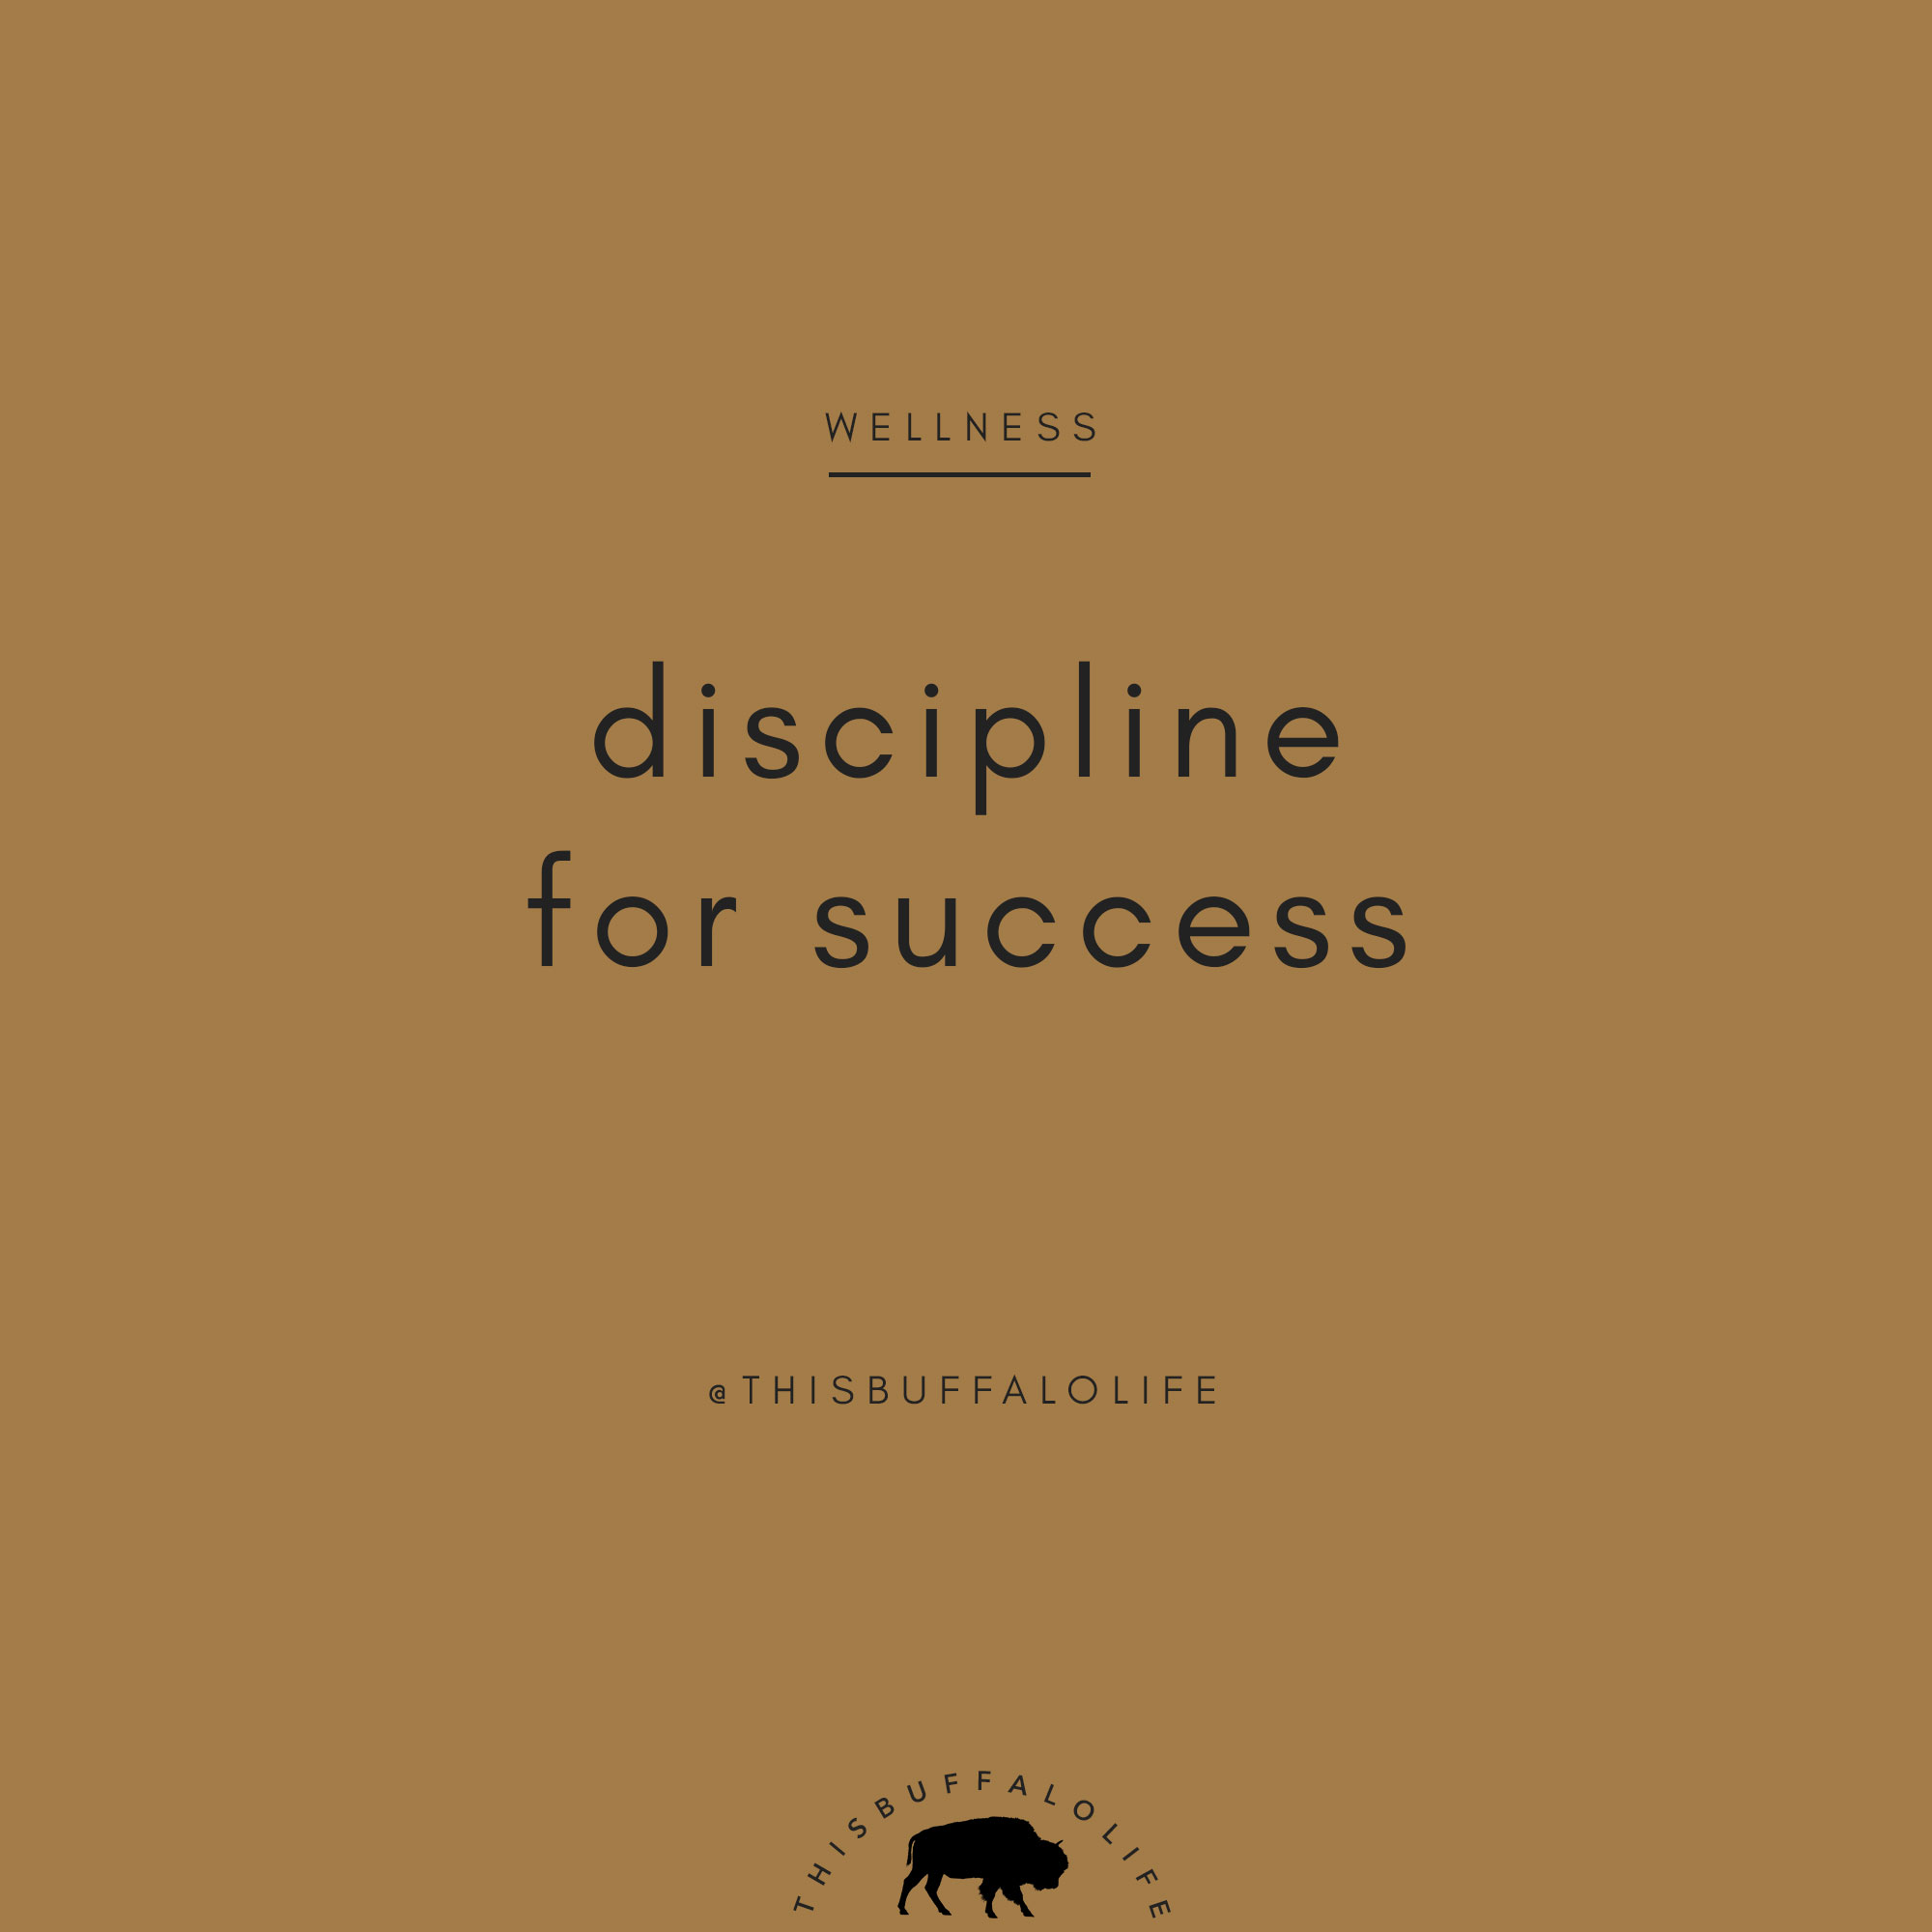 discipline-success.jpg